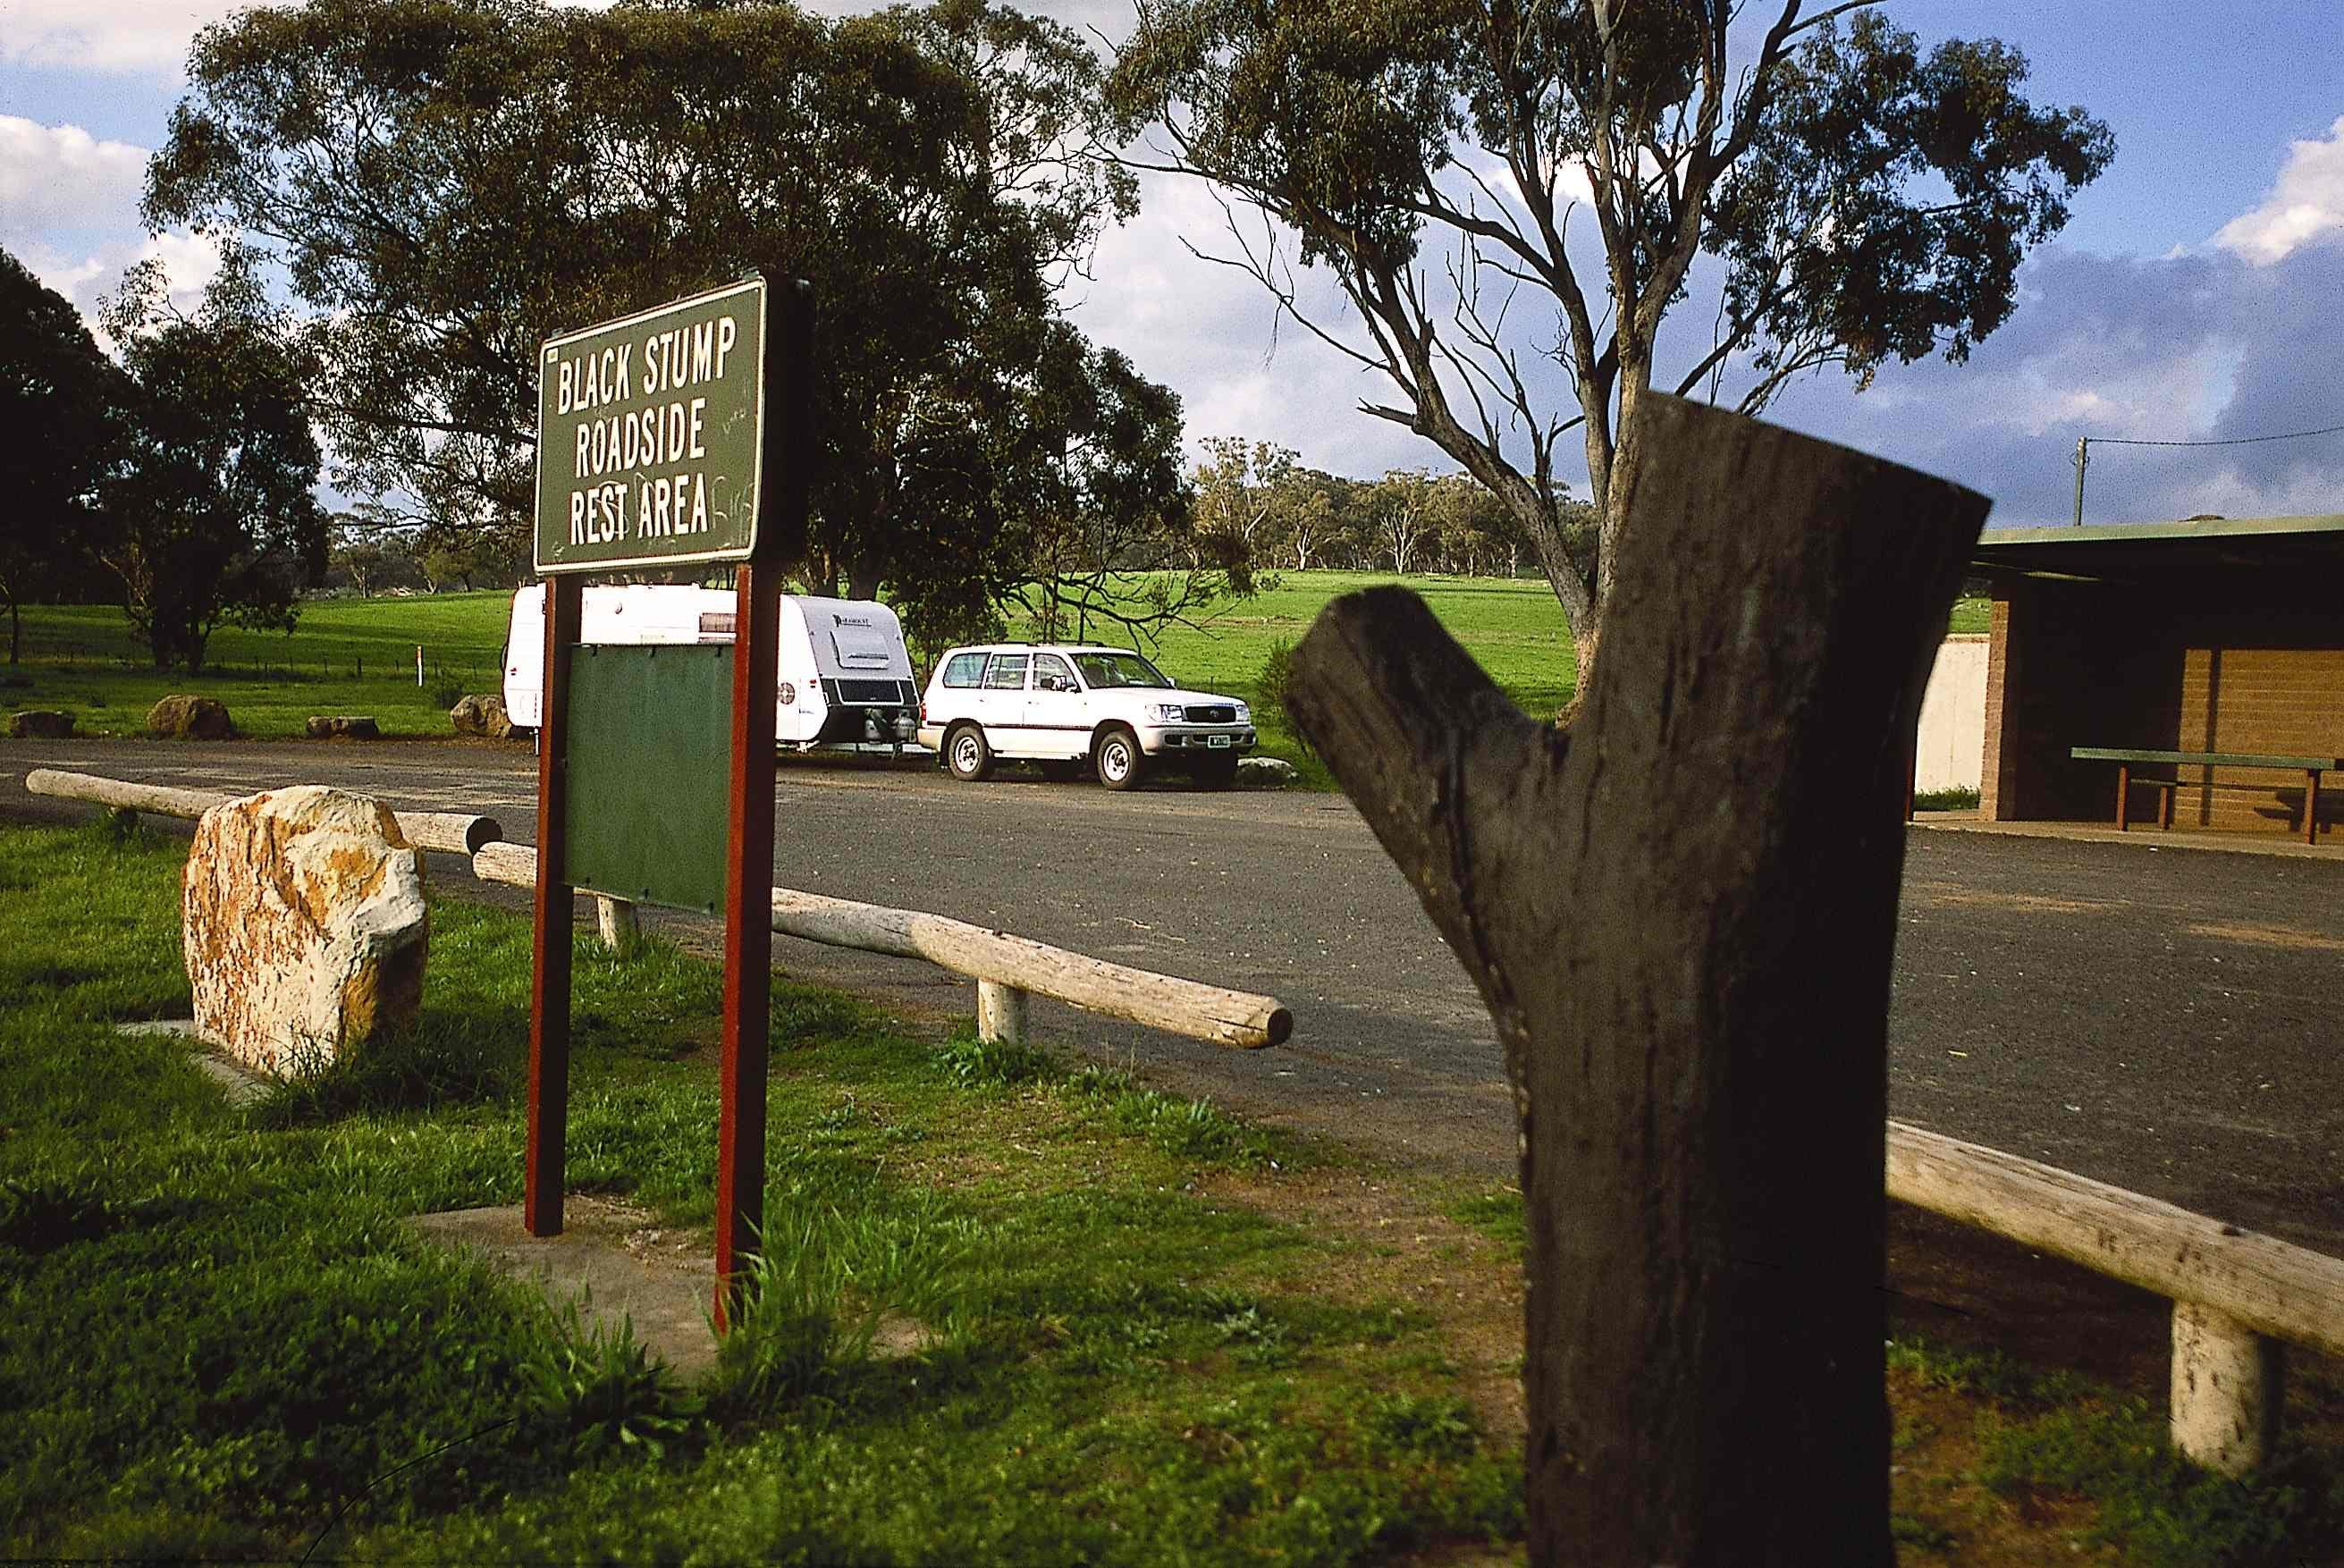 Black Stump Rest Area - Stayed